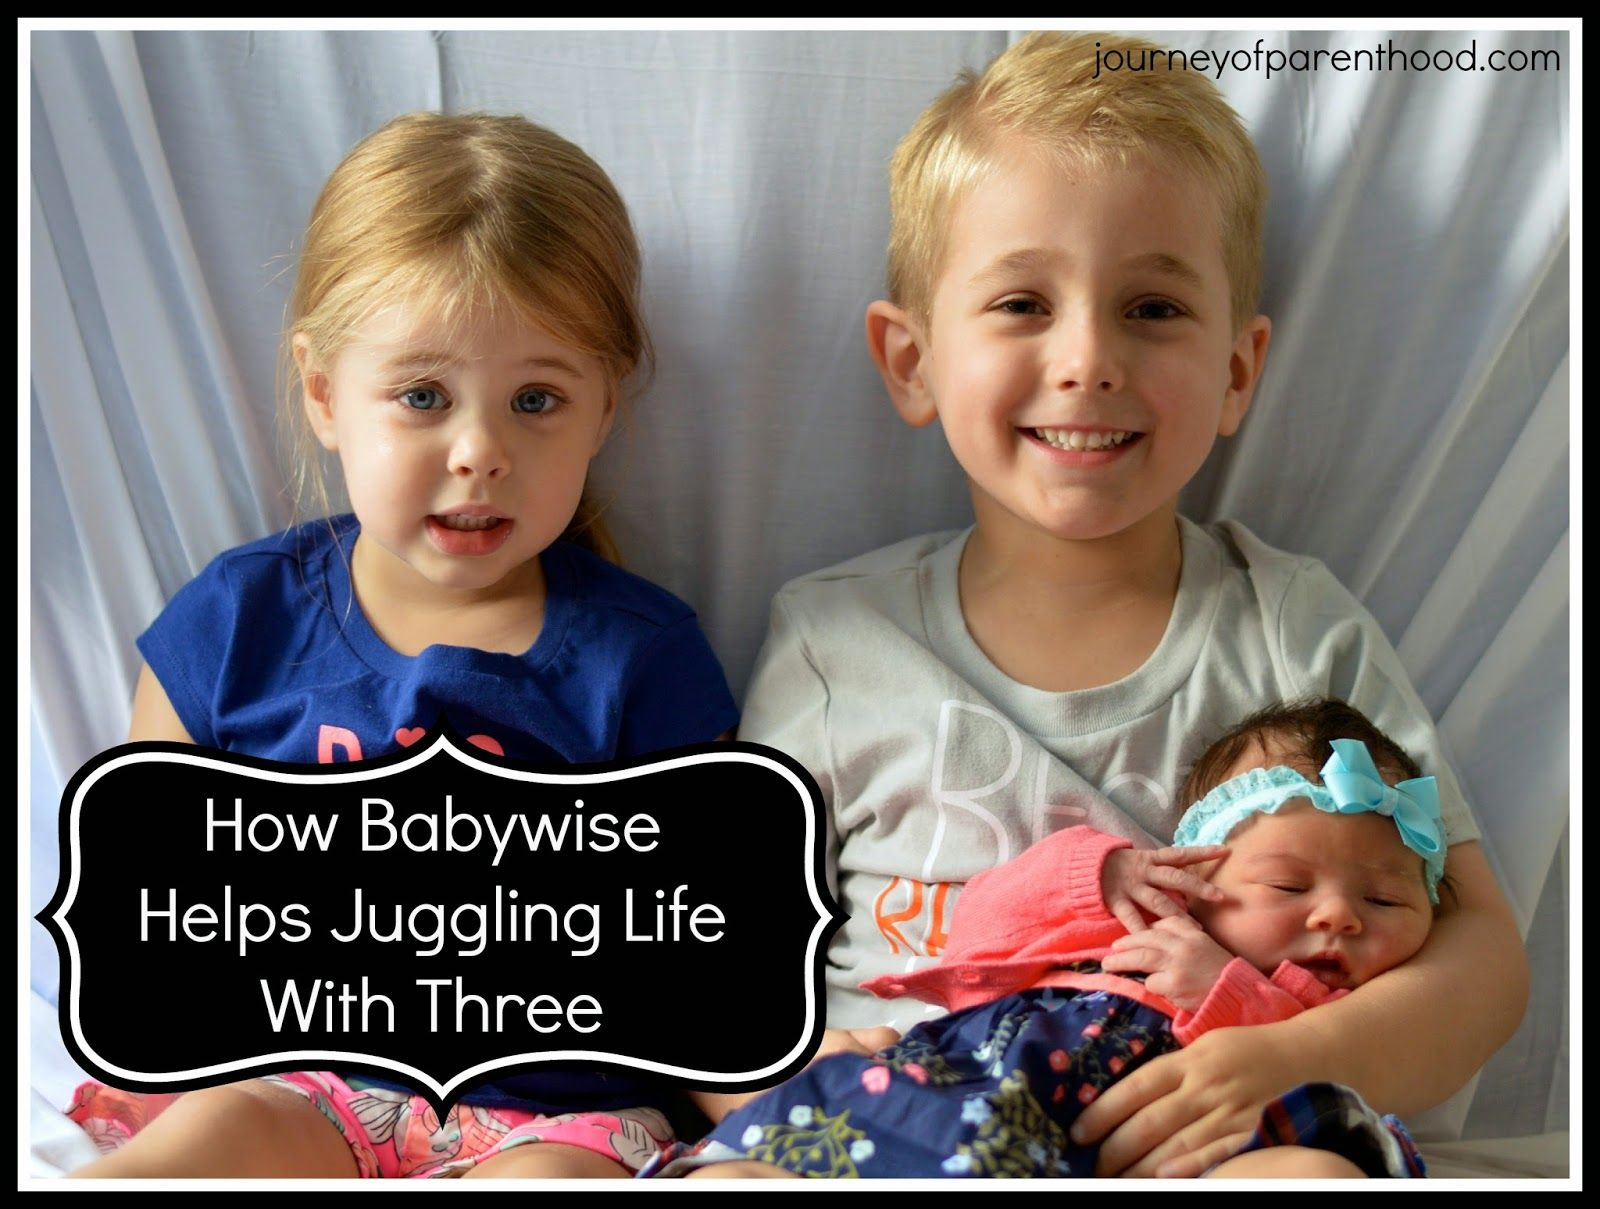 The Journey of Parenthood...: How Babywise Helps Juggling Life With Three Kids